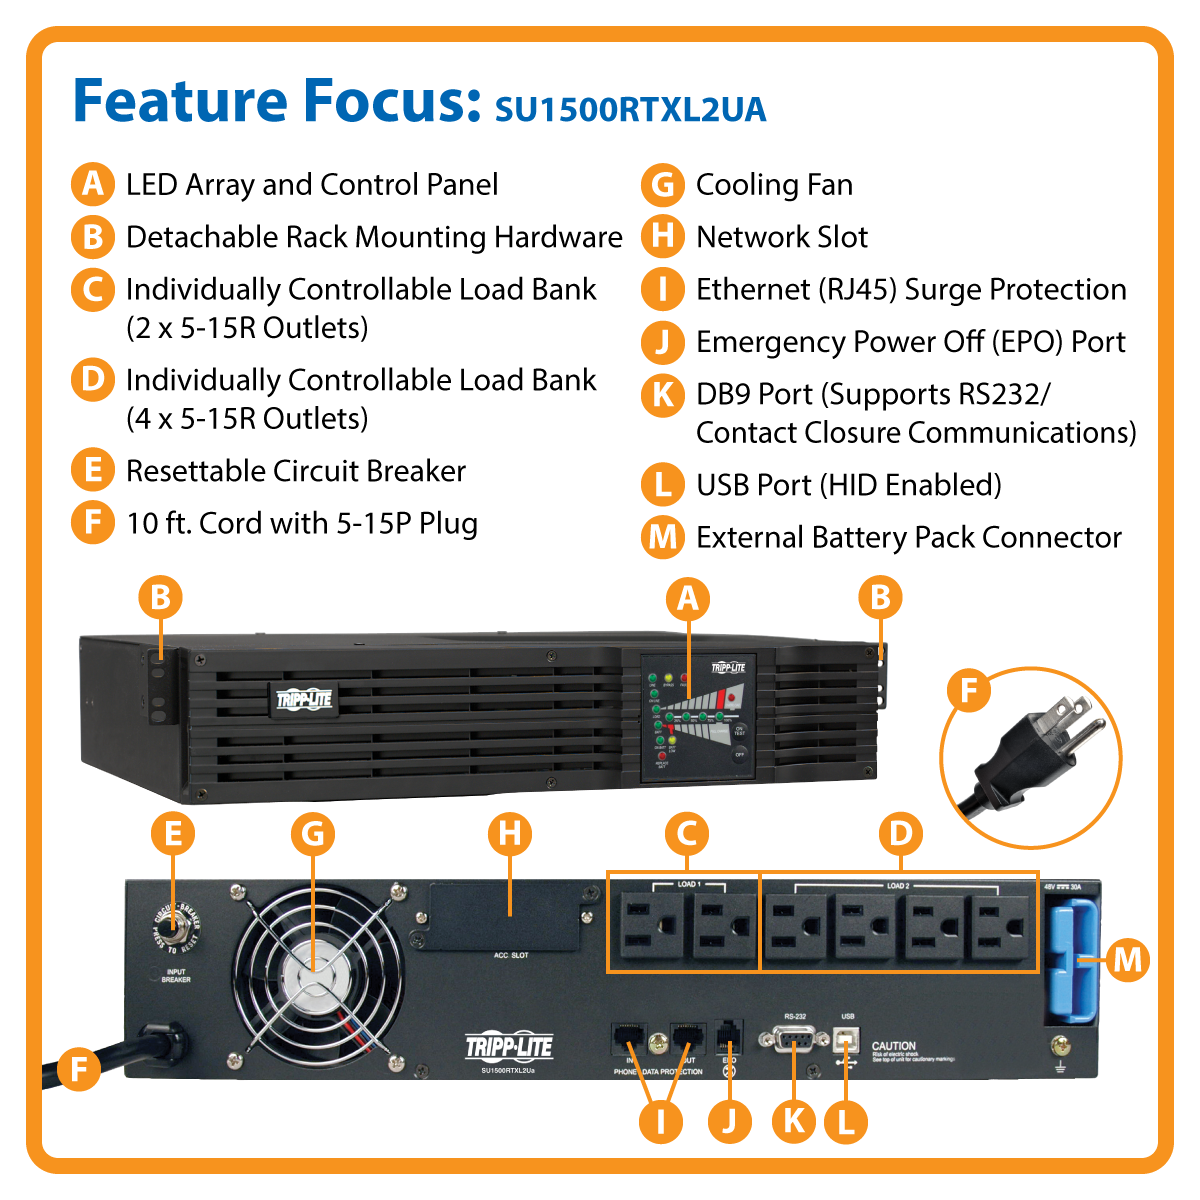 slide 1 of 5,show larger image, su1500rtxl2ua smartonline® double-conversion rack/tower sine wave ups with expandable runtime and network slot